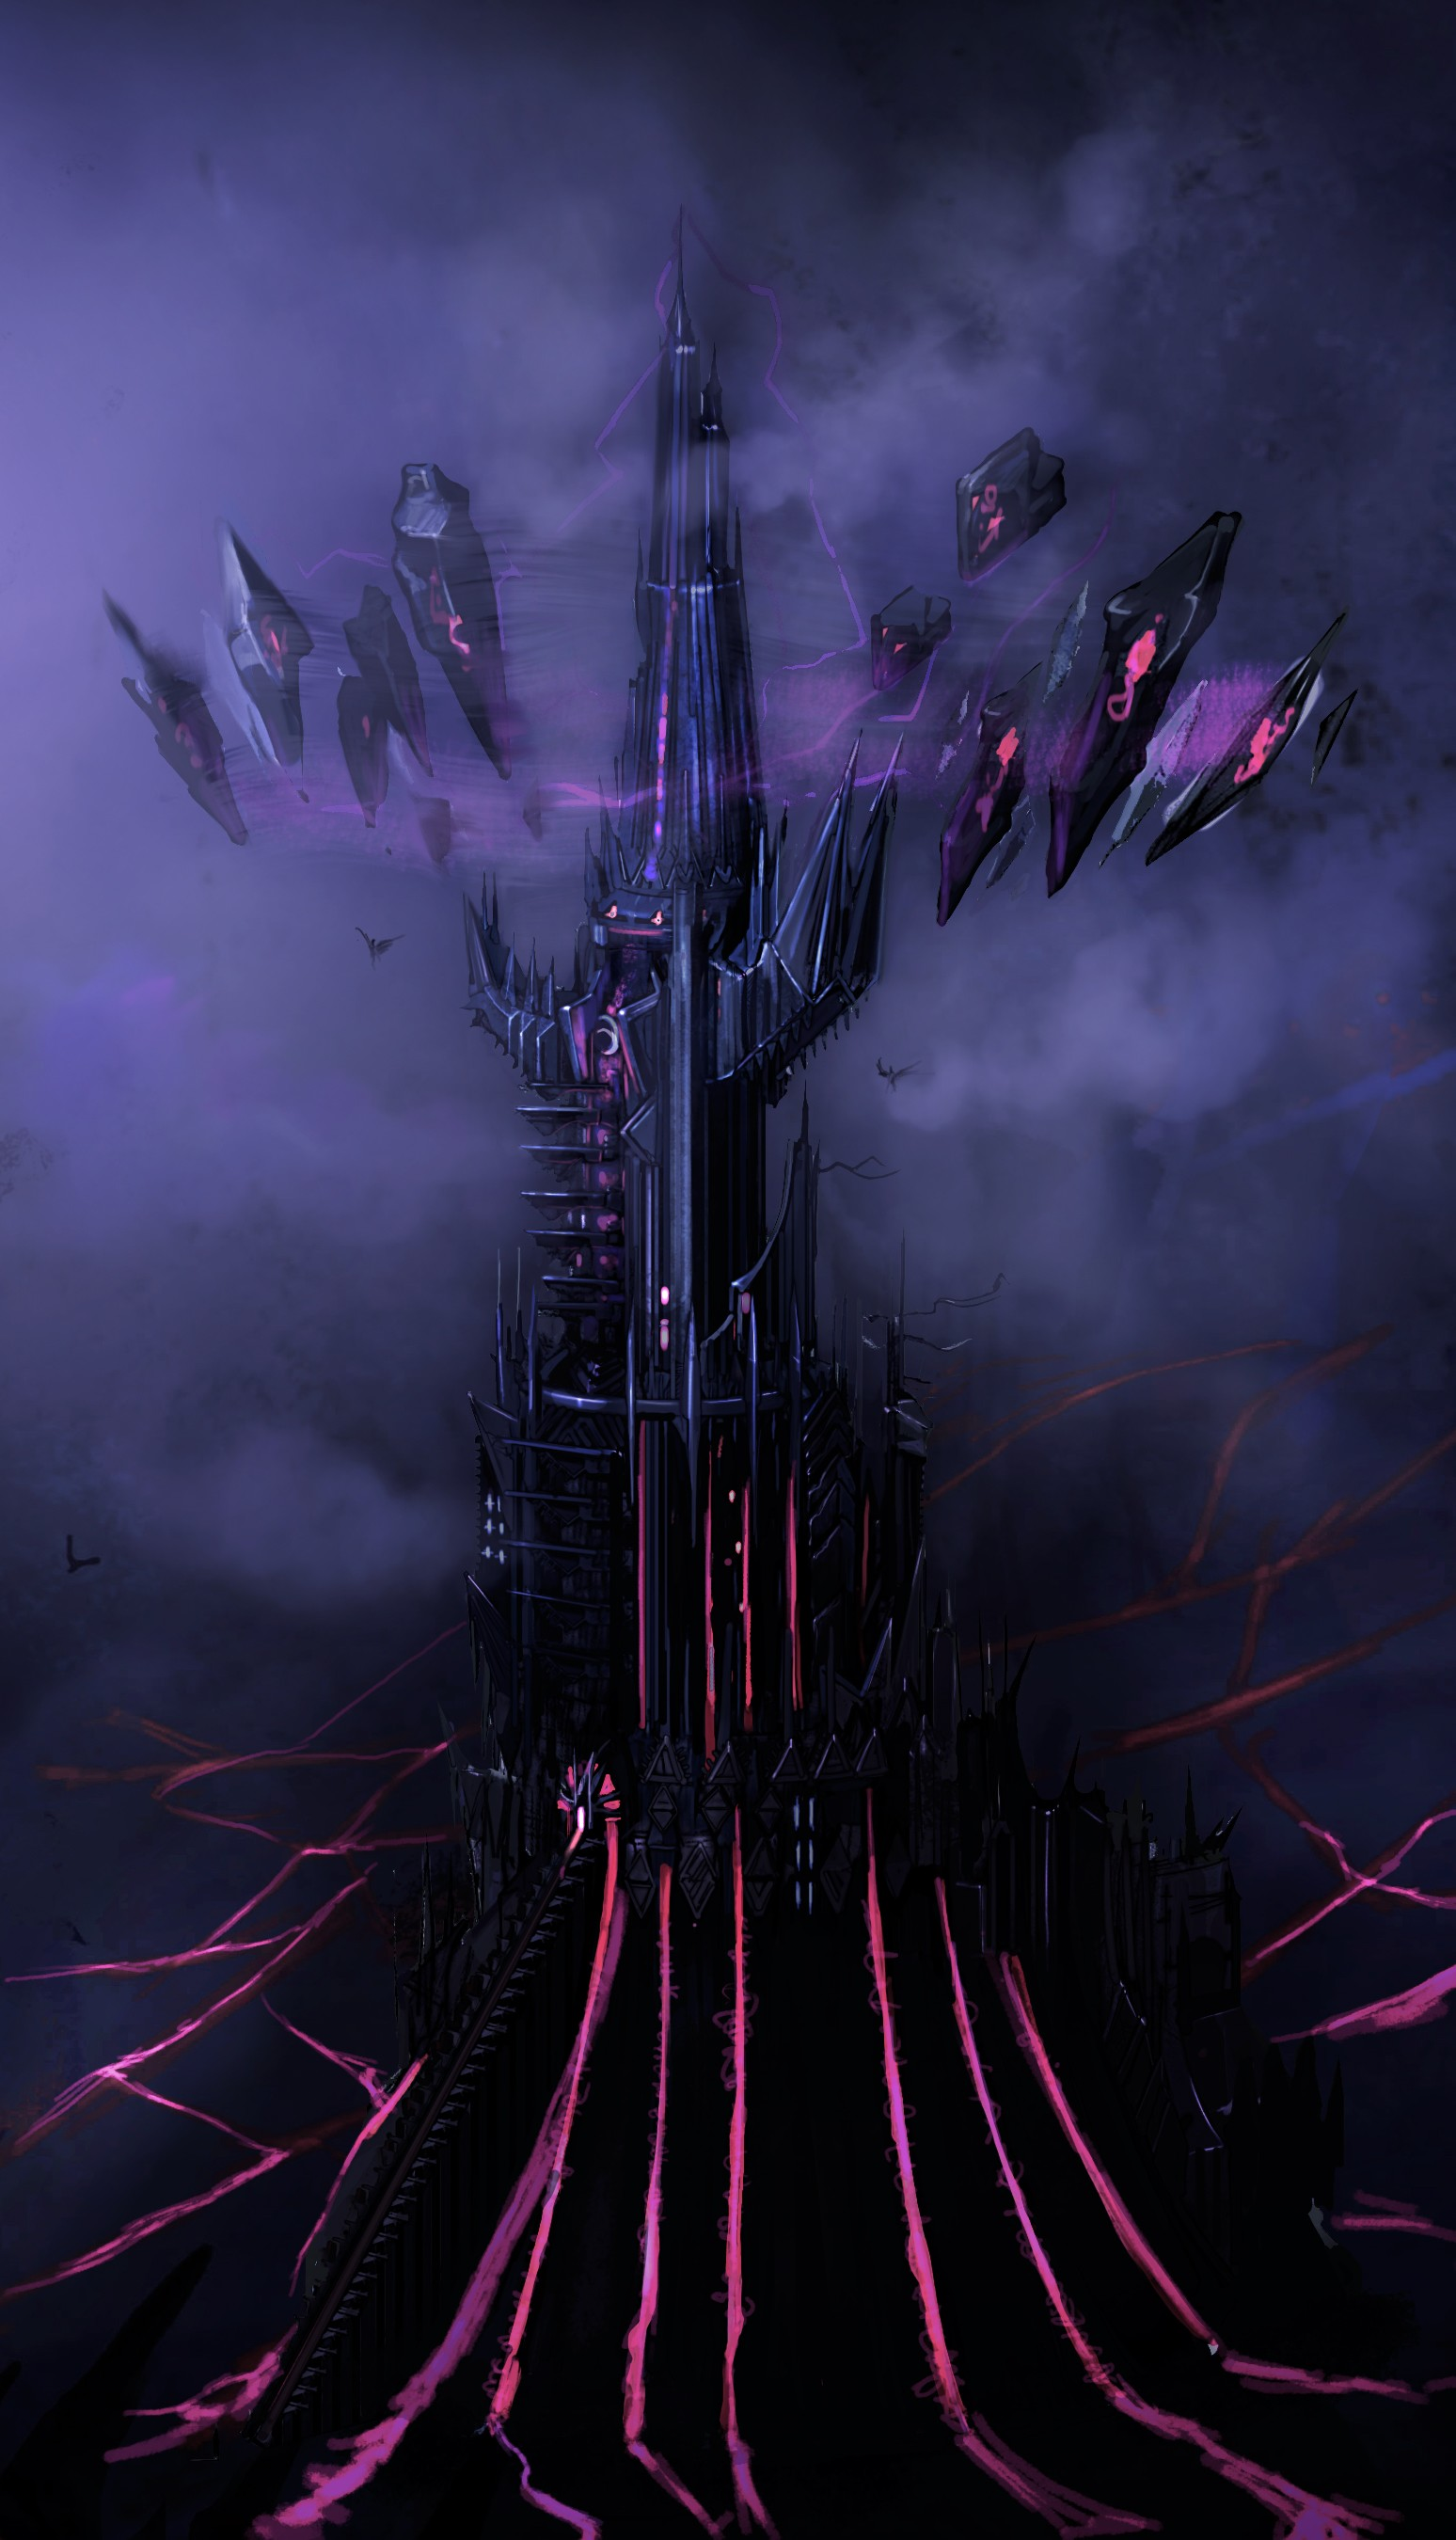 Dnd Online More Module 9 Concept Art This Is Tower Of Despair Built By The Devils Mmorpg